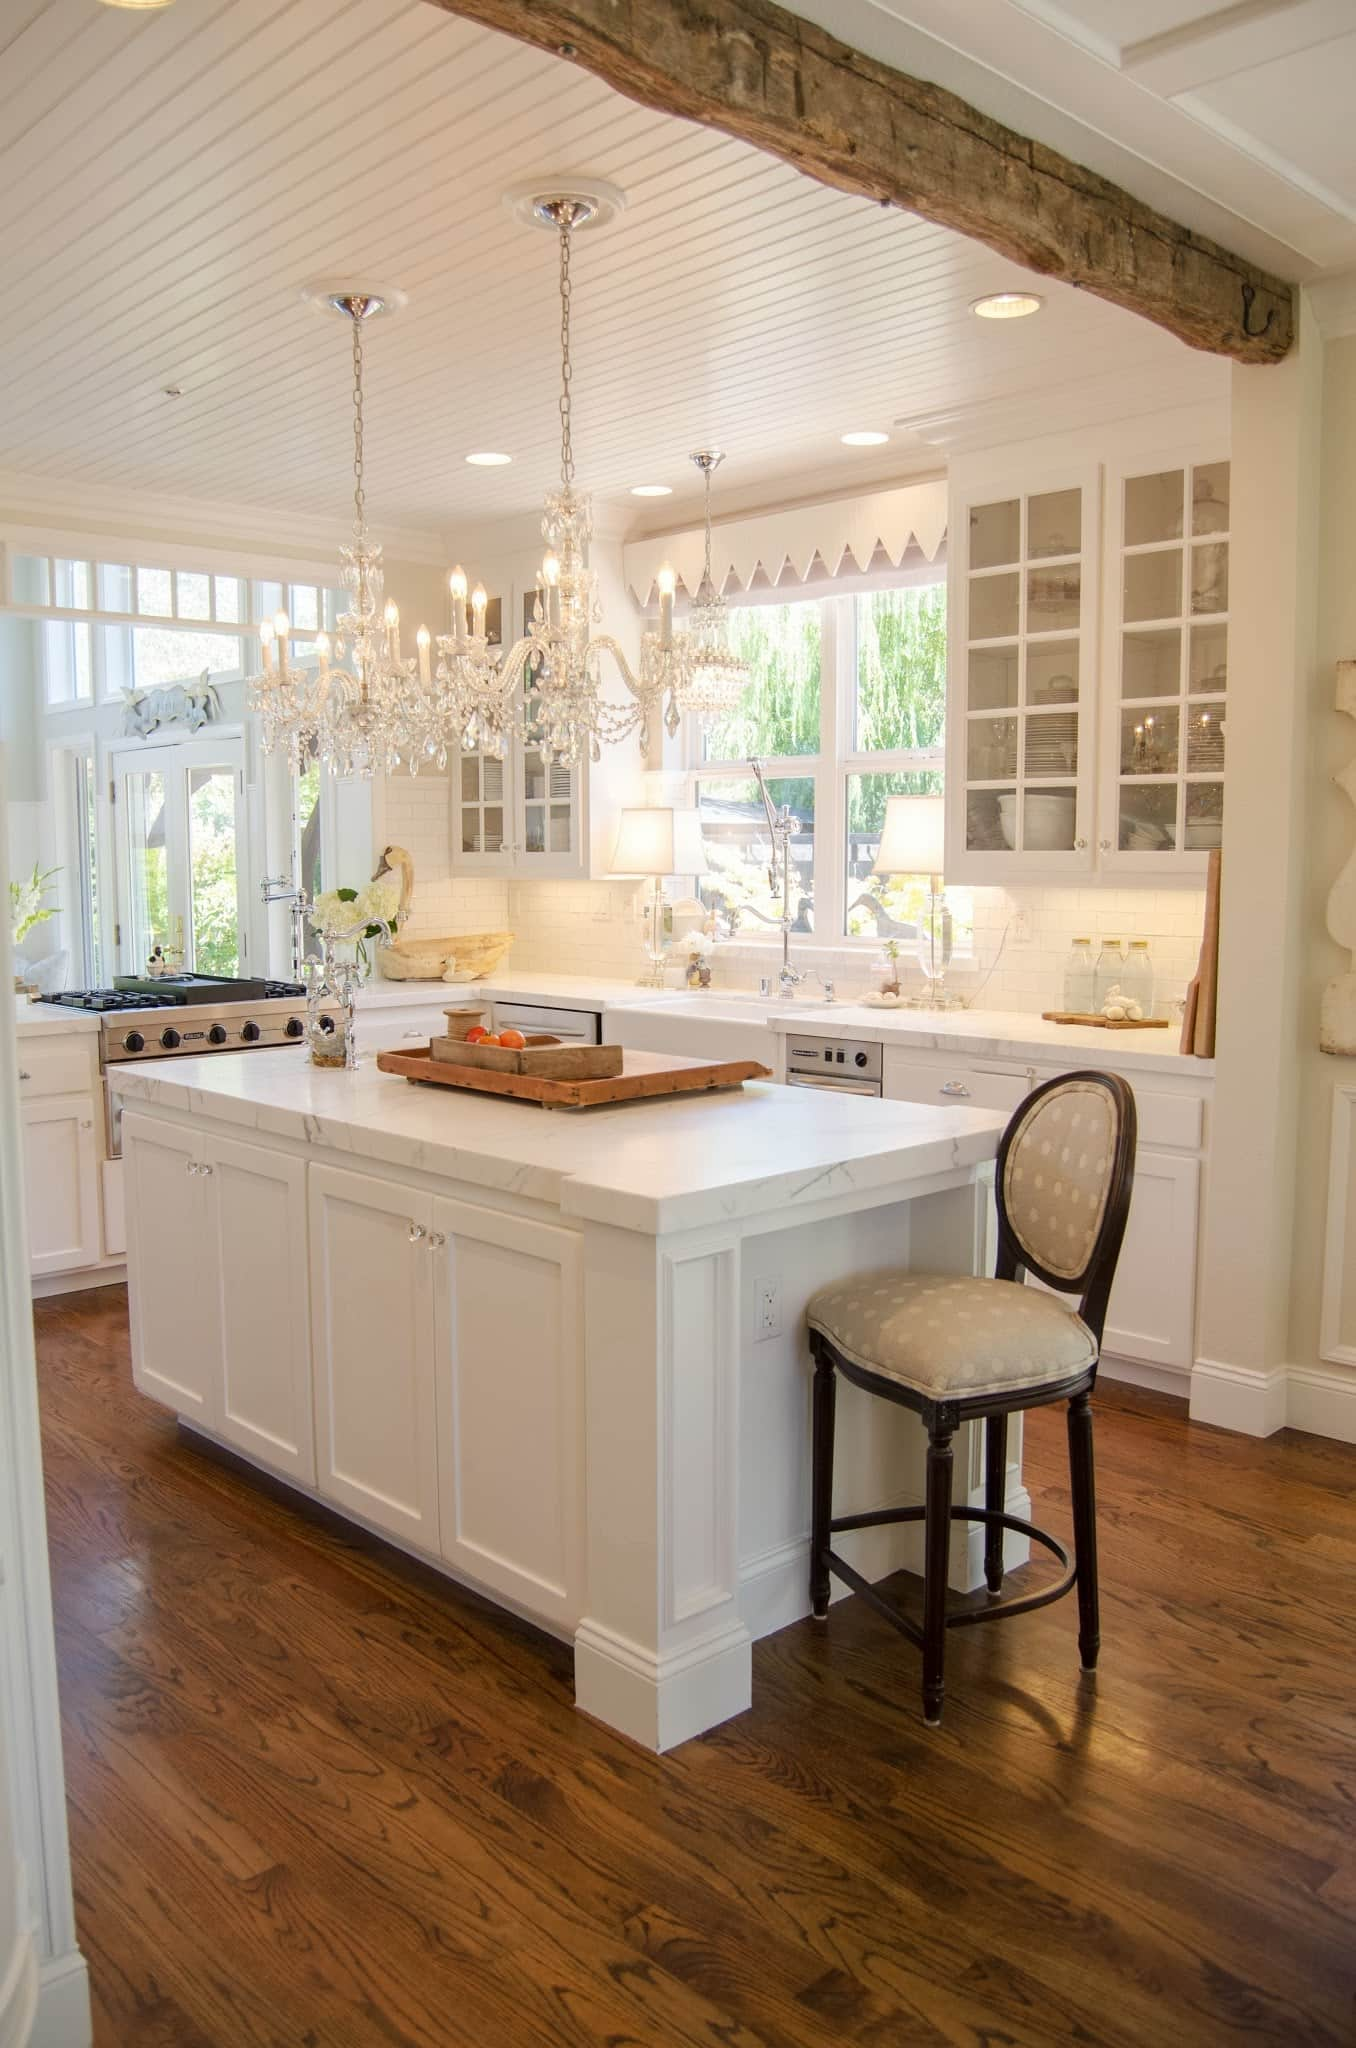 Hardwood Floors in the Kitchen? 10 Examples Prove They're Worth It: gallery image 8